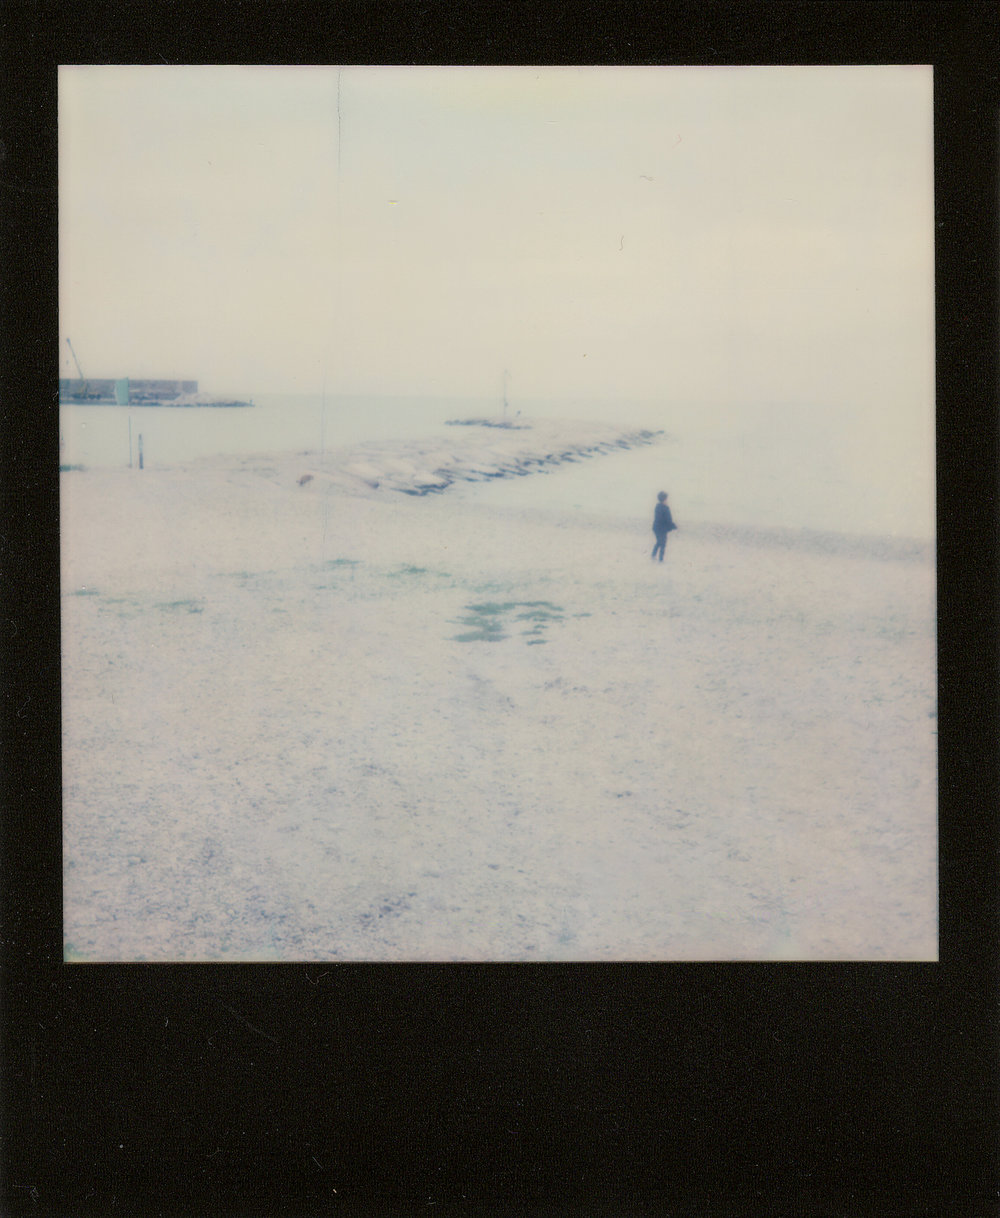 Lonely child | I-1 | Impossible Color + Black Frame | Matteo Quitadamo